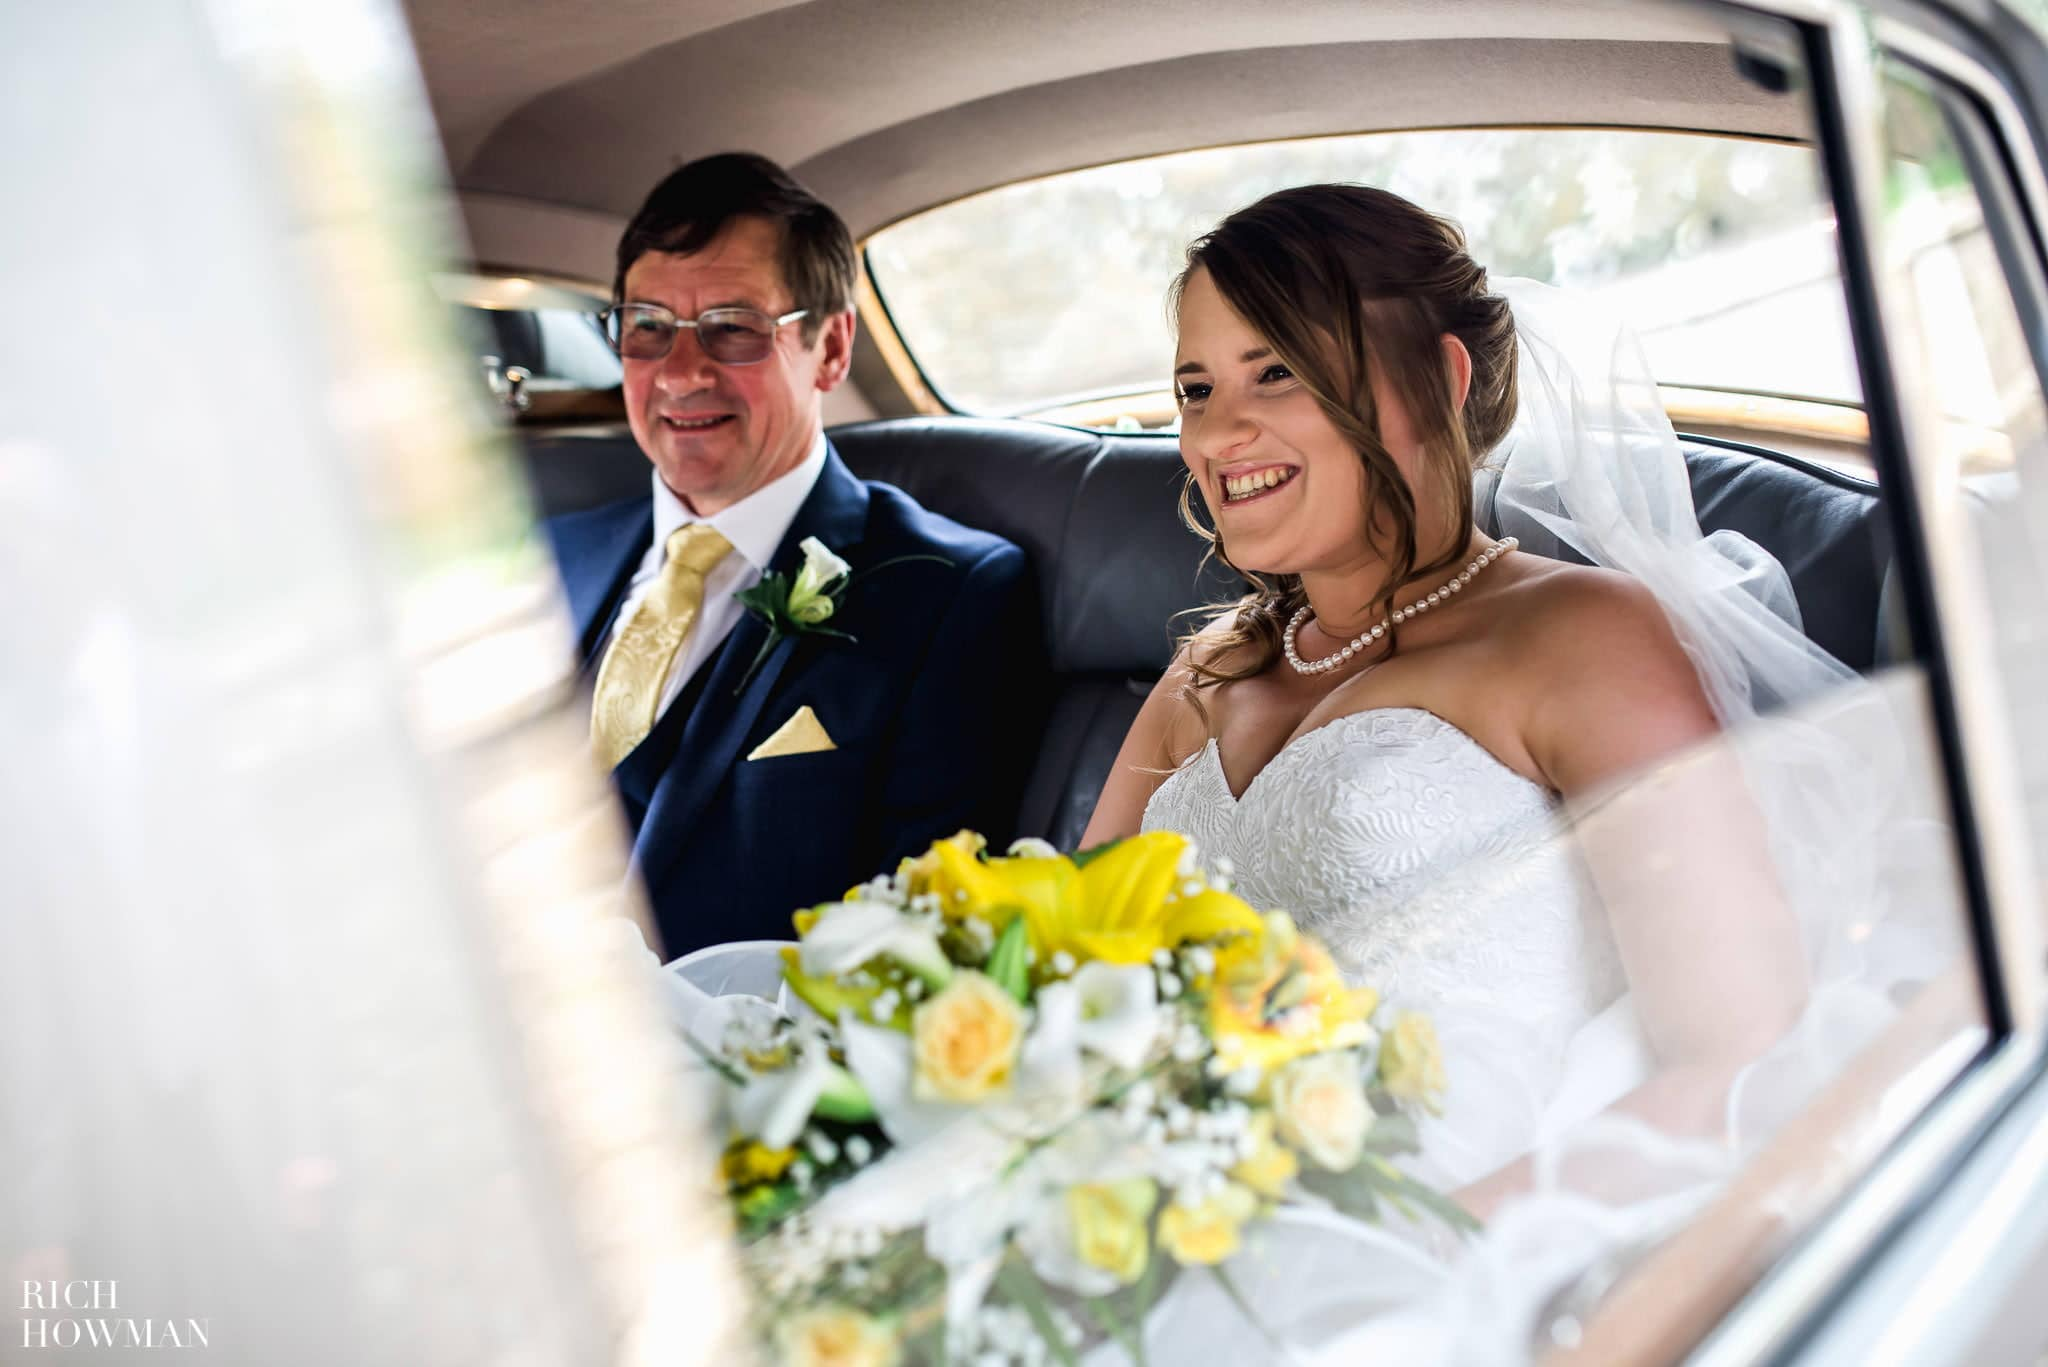 The bride and her father arriving in a white Mercedes at the Church before their wedding ceremony